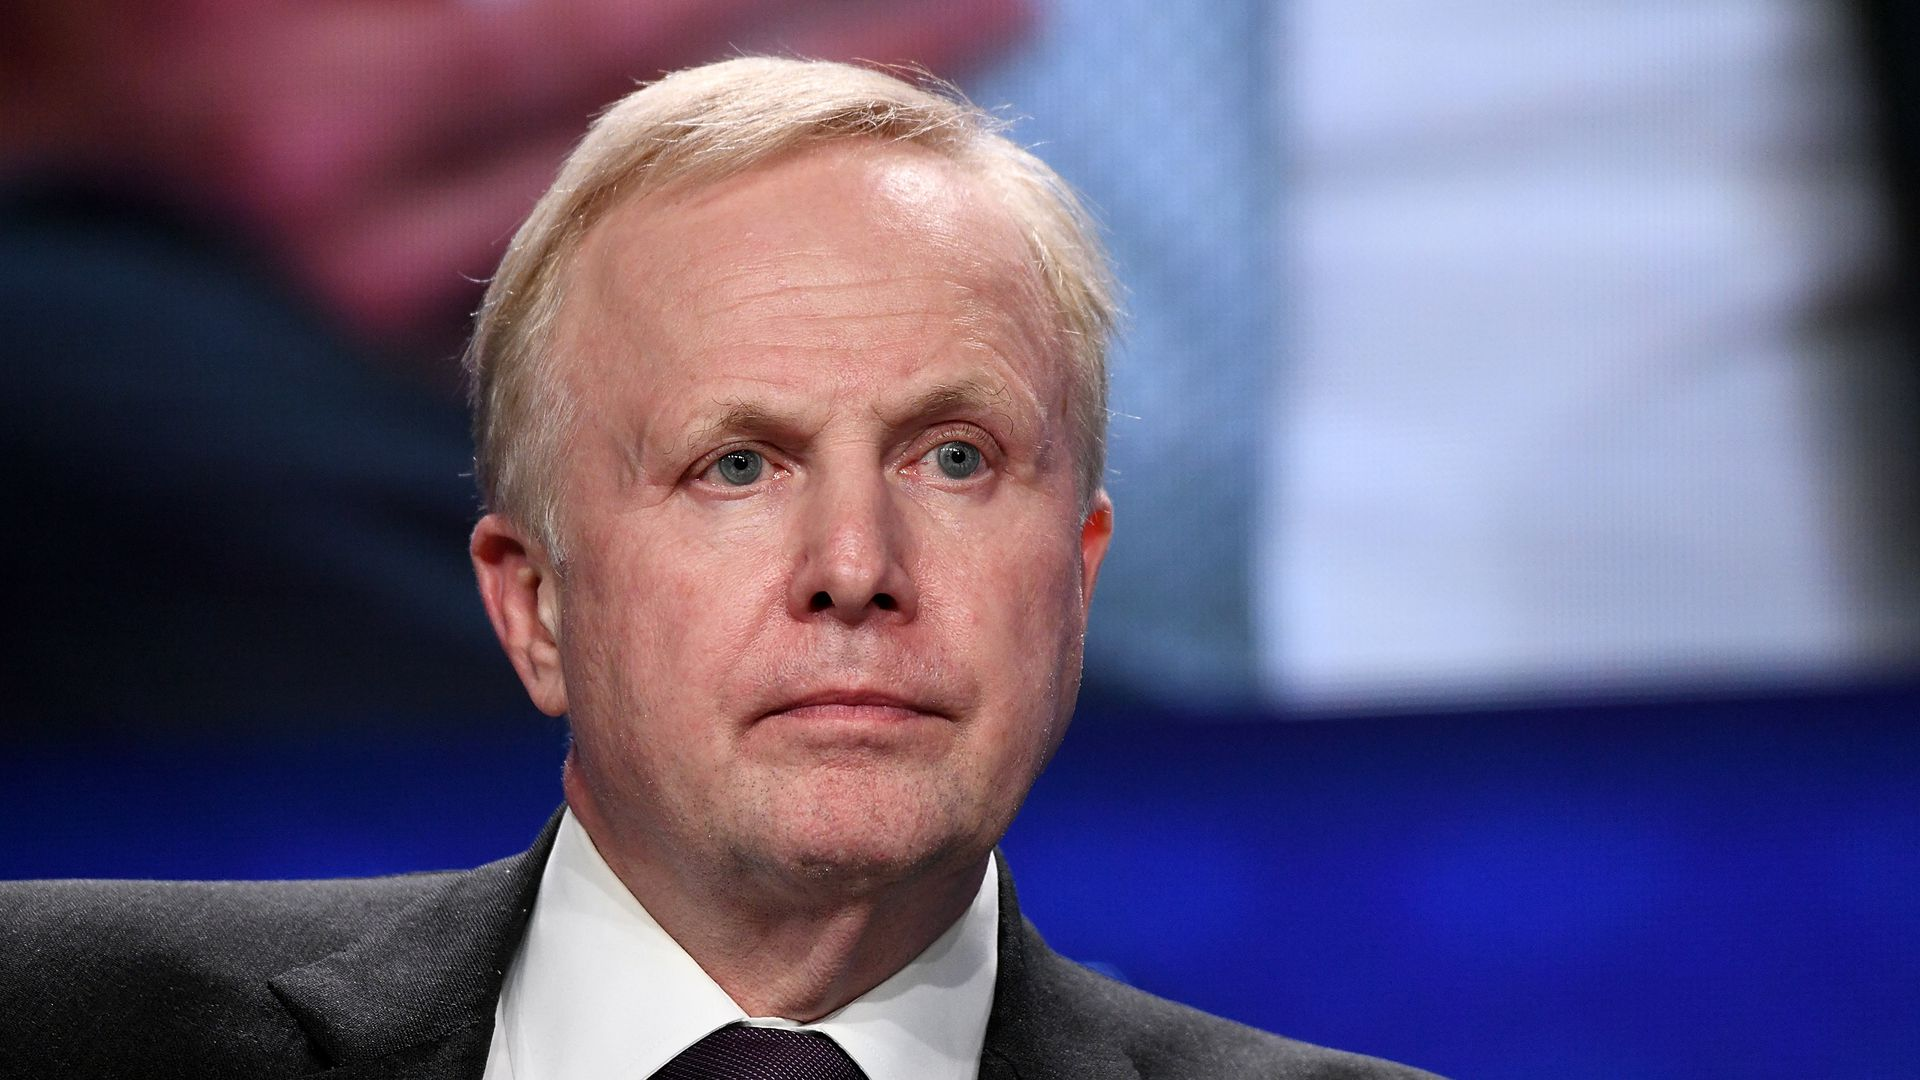 Reports: BP CEO prepared to head for the exit